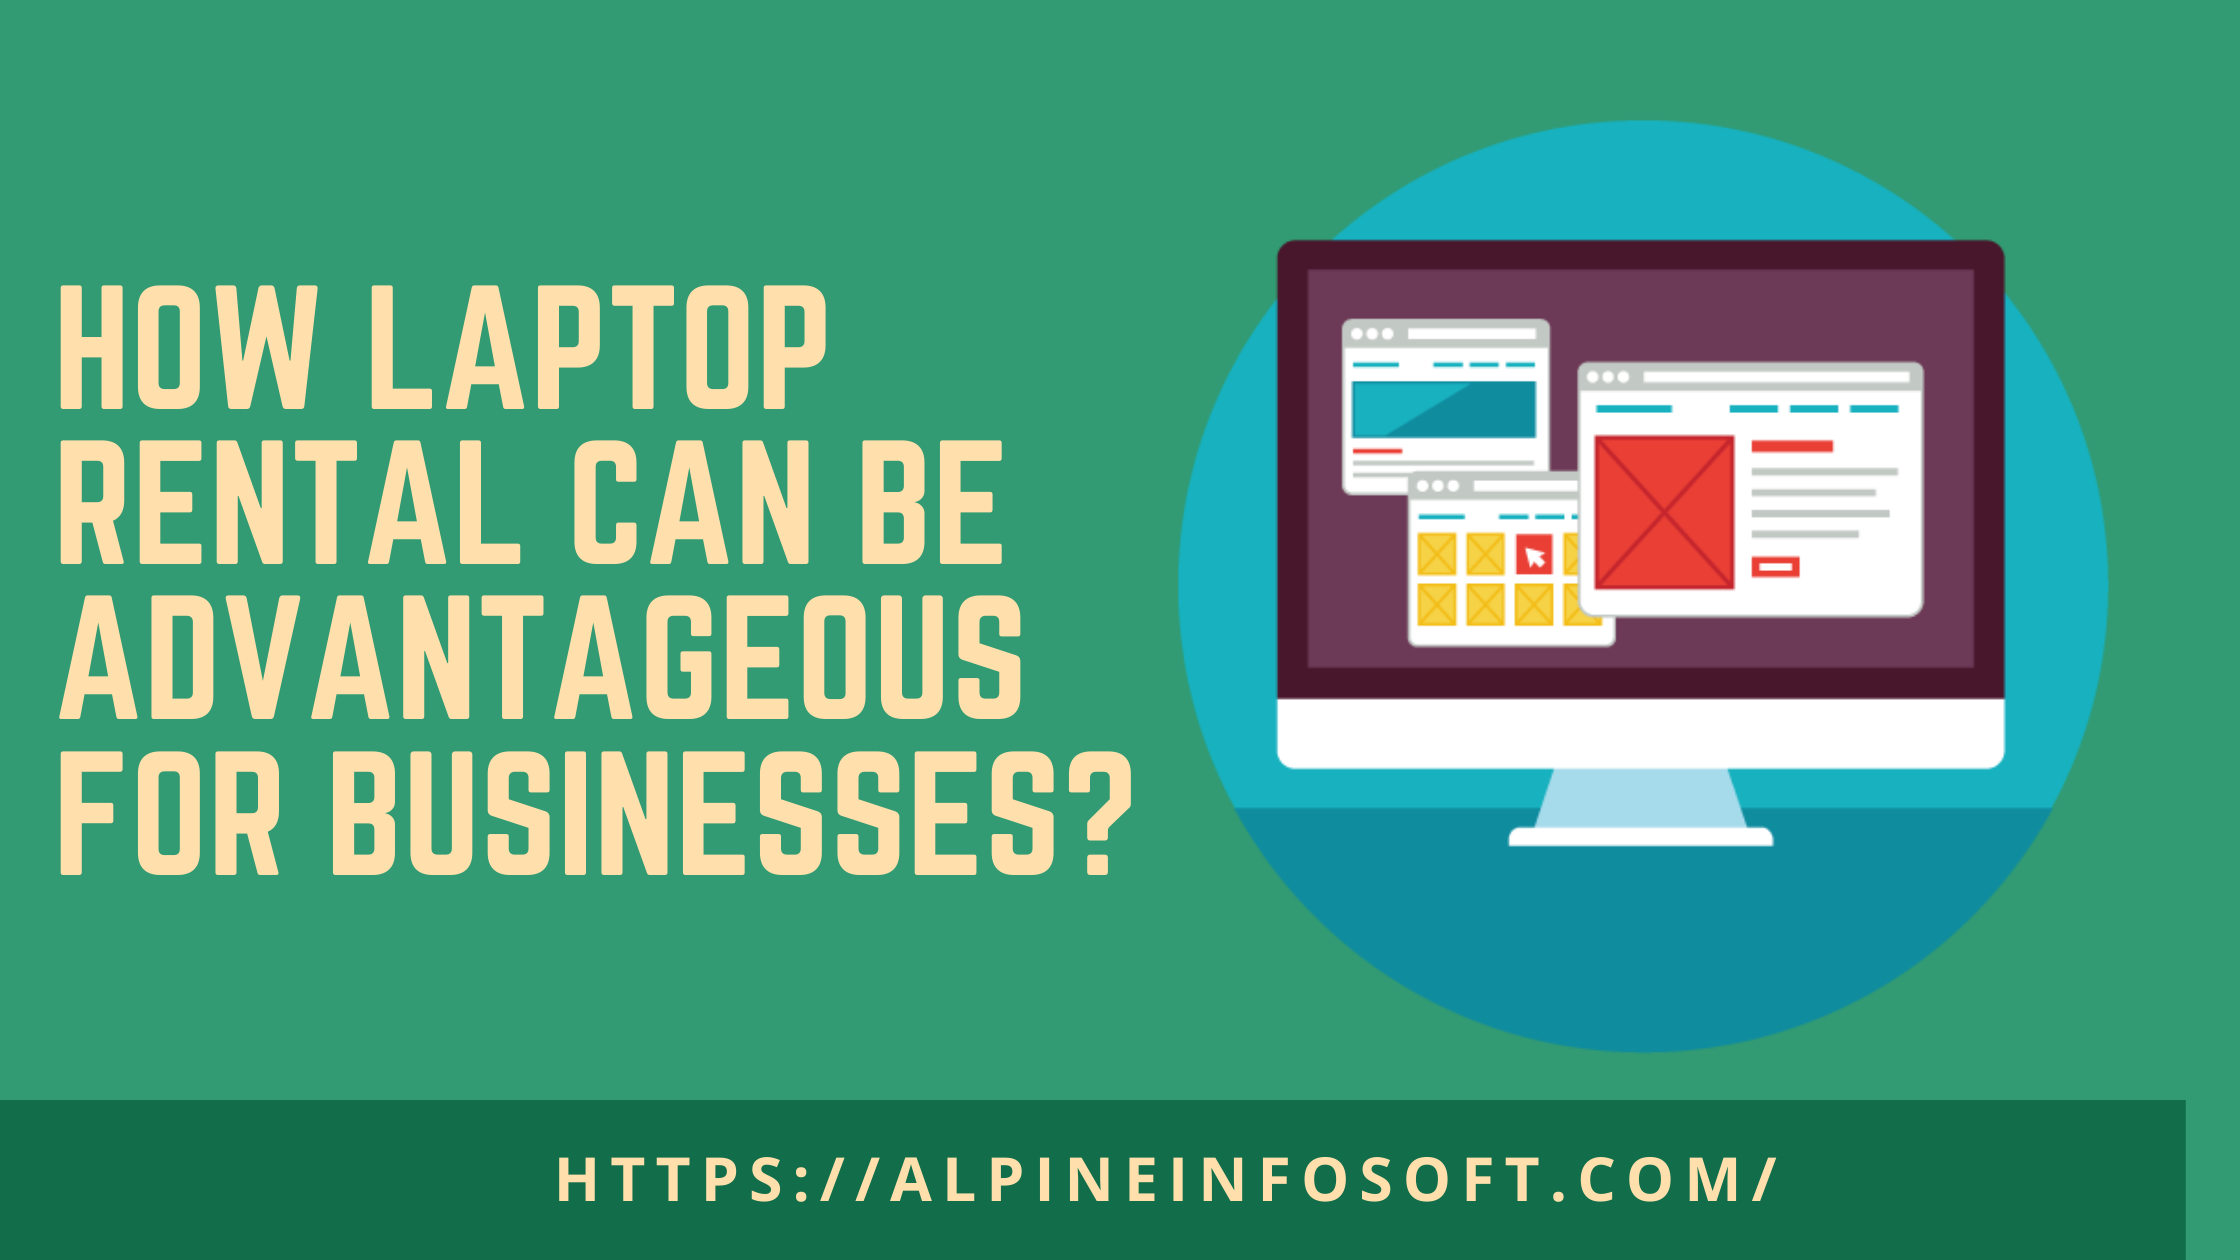 How Laptop Rental Can Be Advantageous for Businesses?